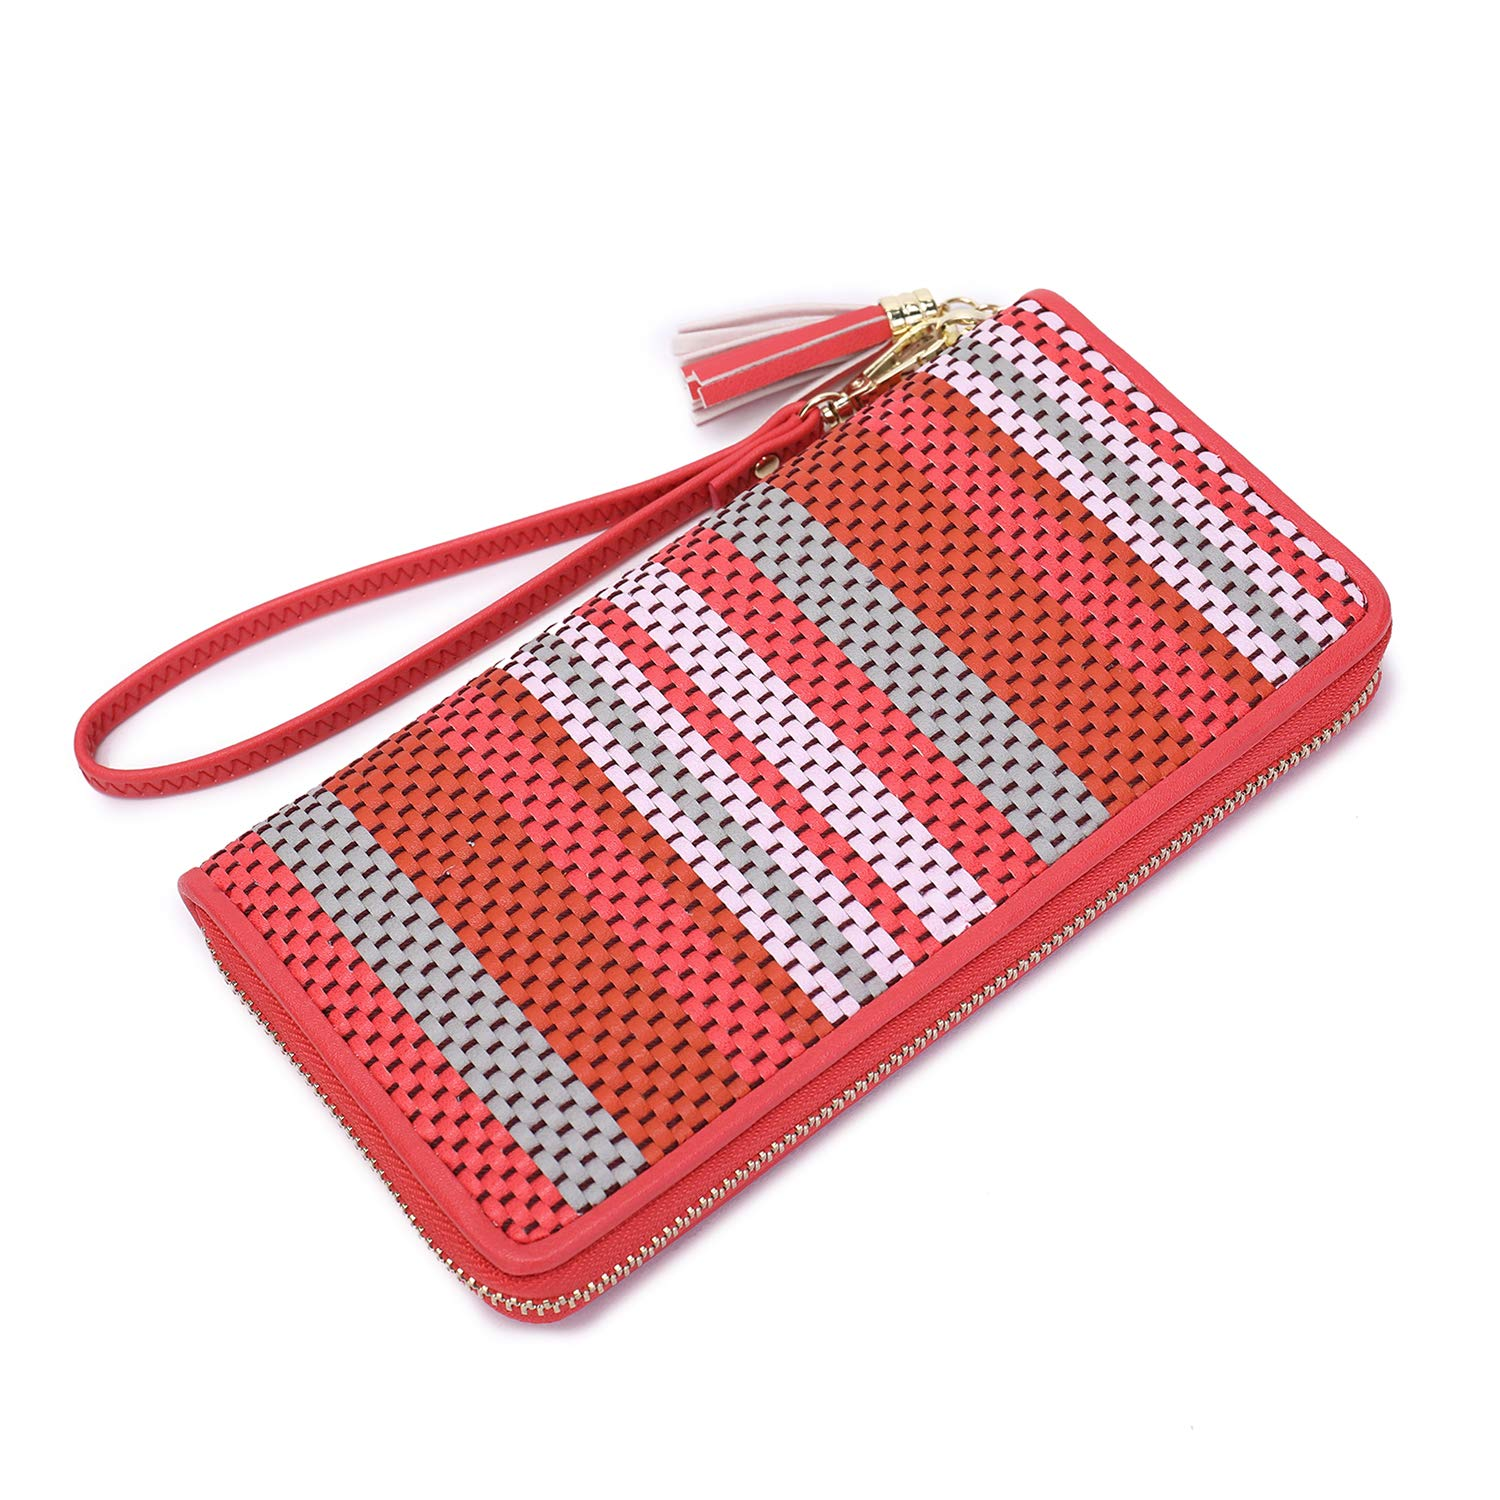 Women Large Wristlet Wallet bifold tassel ladies Clutch Phone Holder girl's Designer Woven Leather Long Purses Card organizer with Wrist Strap zipper around rose red